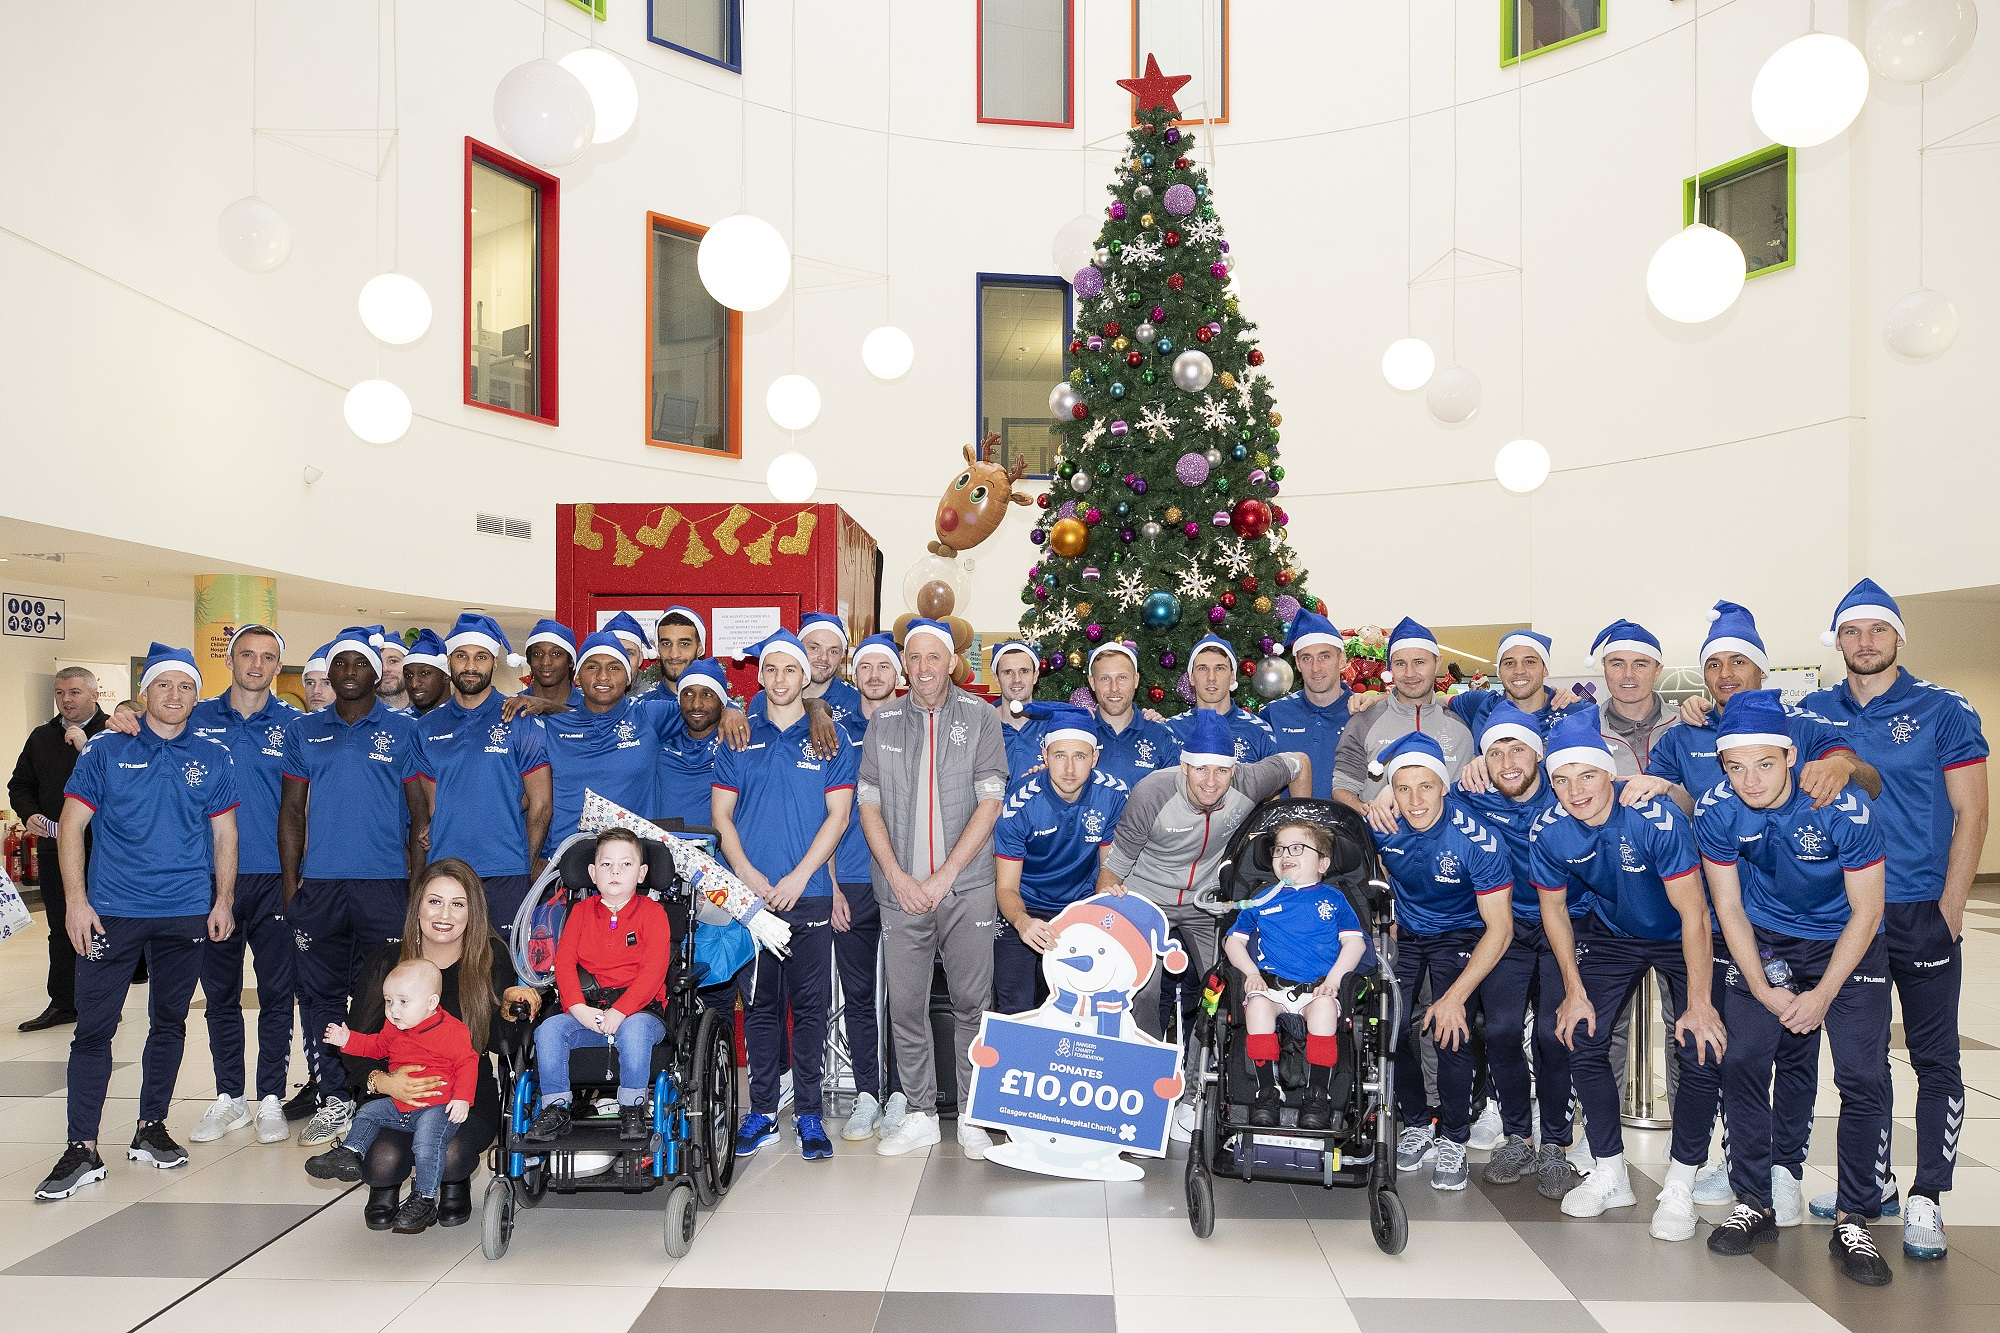 Foundation Donates 10 000 To Children S Hospital During